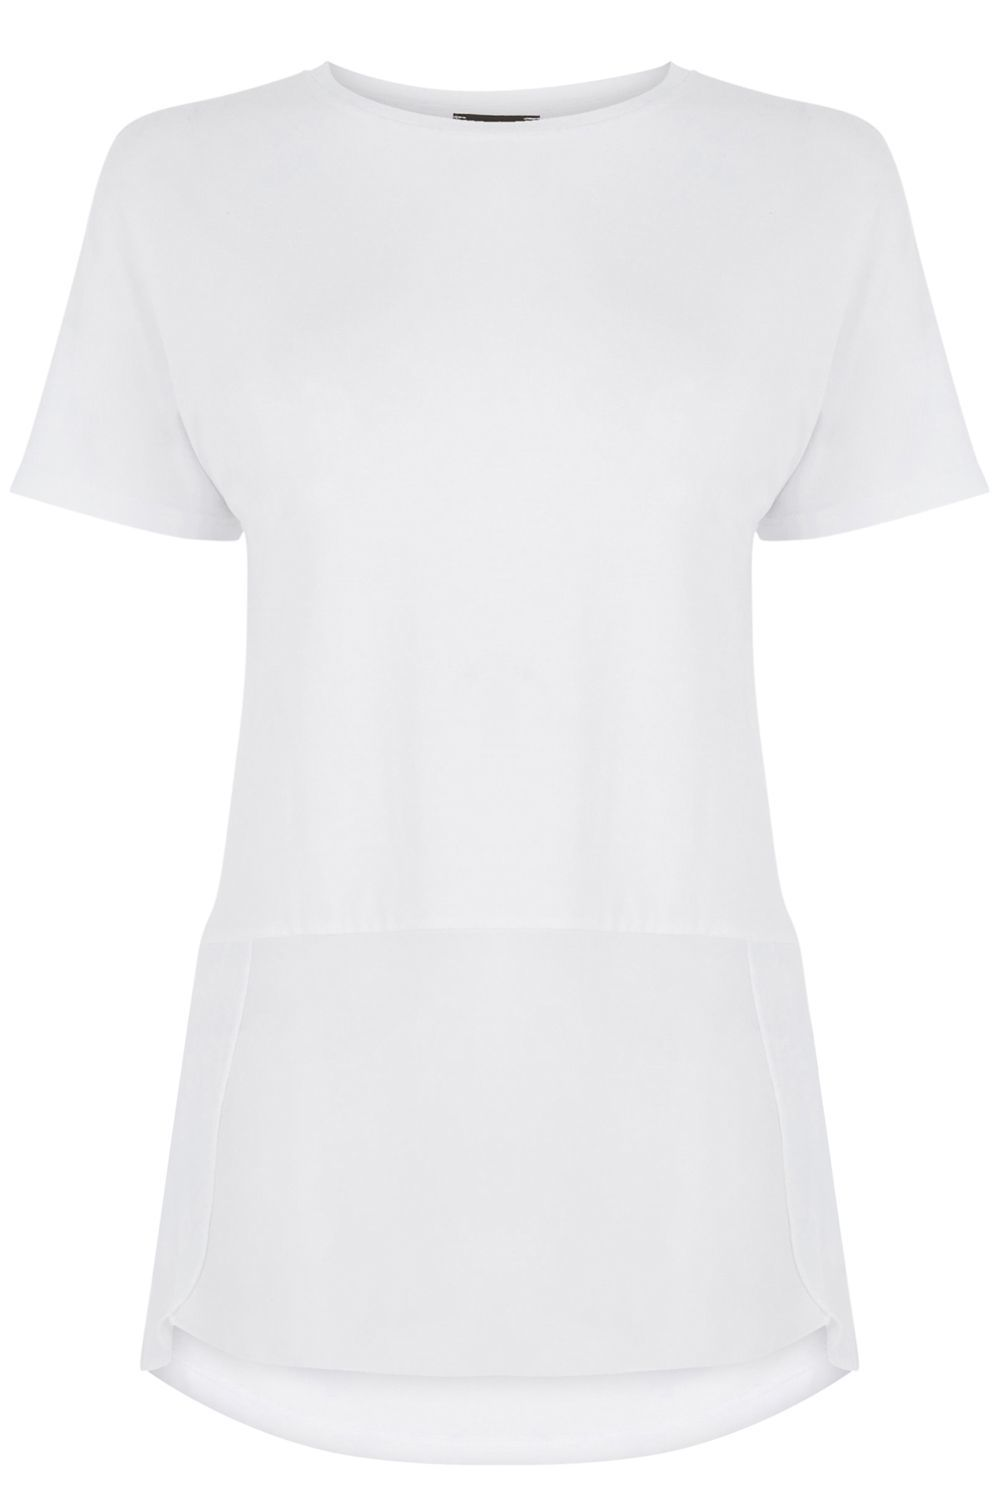 Woven Mix Short Sleeved Top, White - neckline: round neck; pattern: plain; length: below the bottom; predominant colour: white; occasions: casual, creative work; style: top; fibres: polyester/polyamide - 100%; fit: body skimming; sleeve length: short sleeve; sleeve style: standard; pattern type: fabric; texture group: jersey - stretchy/drapey; season: s/s 2016; wardrobe: basic